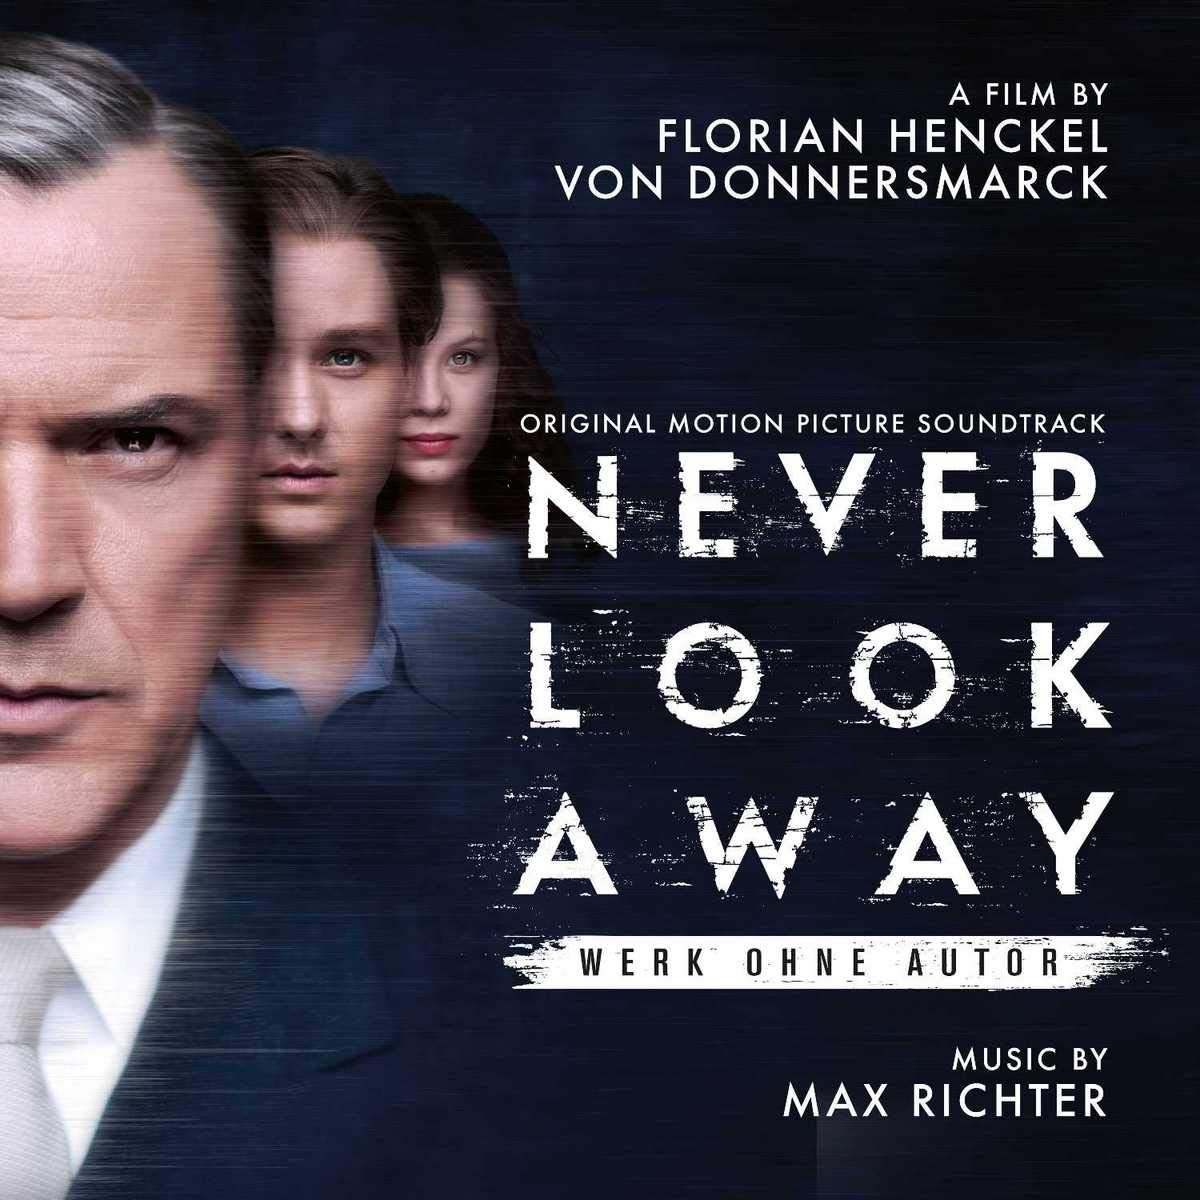 Never look away - Opera senza autore (2019) (vinile)